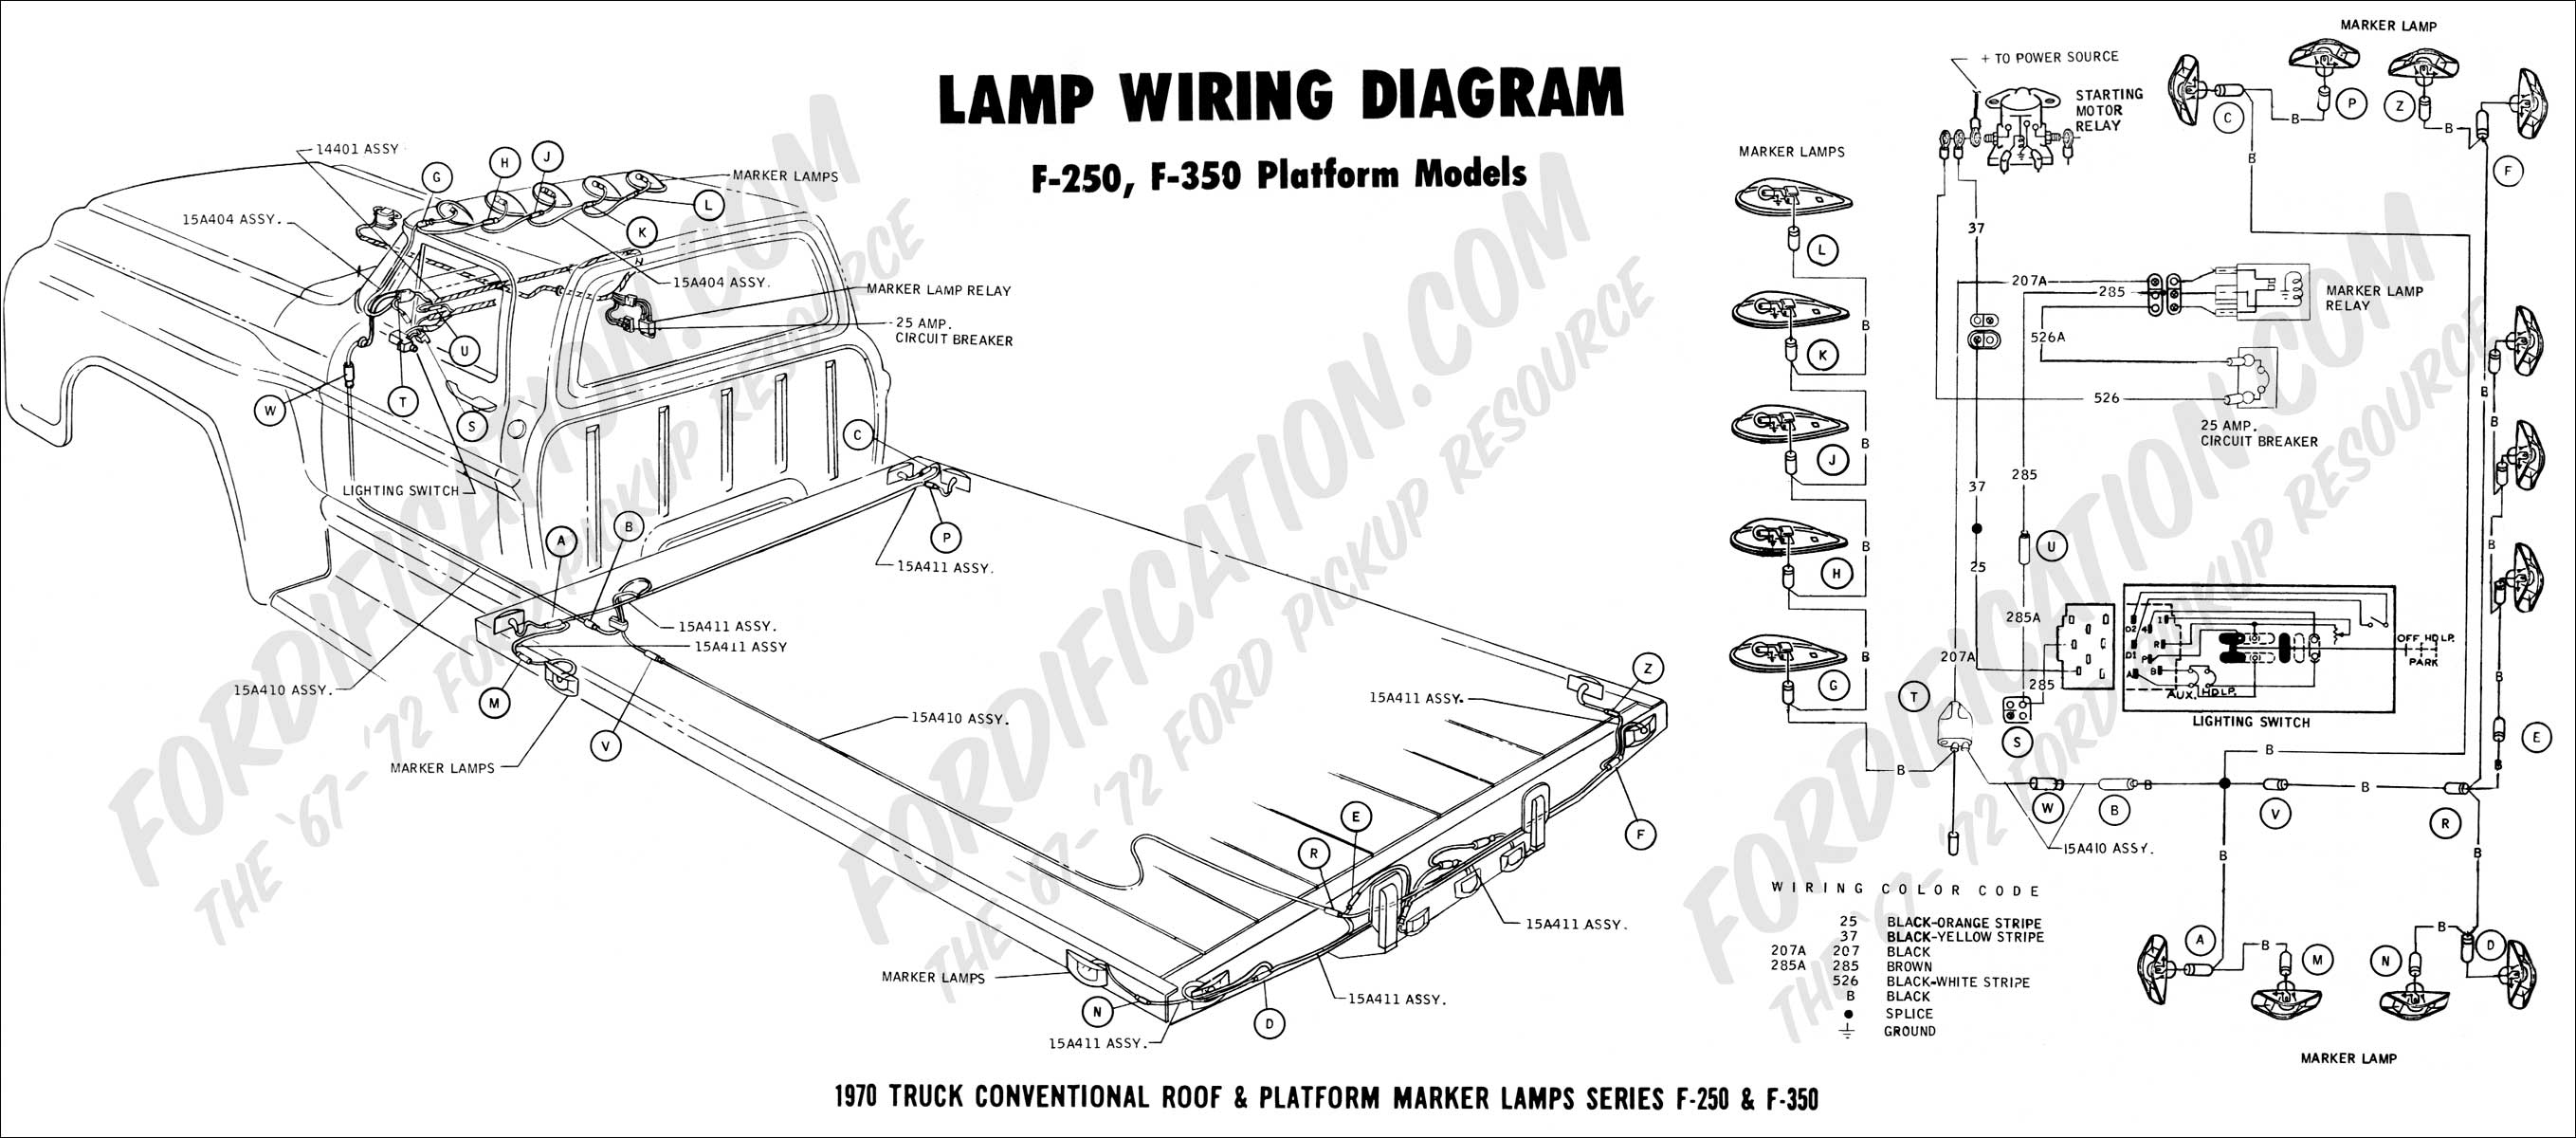 78 ford f 250 wiring diagram wiring diagram todays Water Temp Gauge Wiring Diagram 1979 ford f250 wiring diagram wiring diagrams 85 ford f 250 wiring diagram 78 ford f 250 wiring diagram